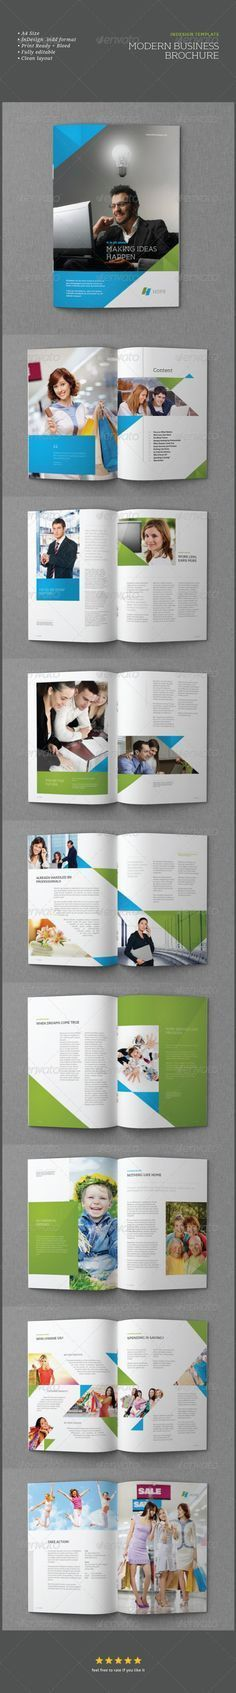 Construction Company A5 Profile Template | Company profile ...